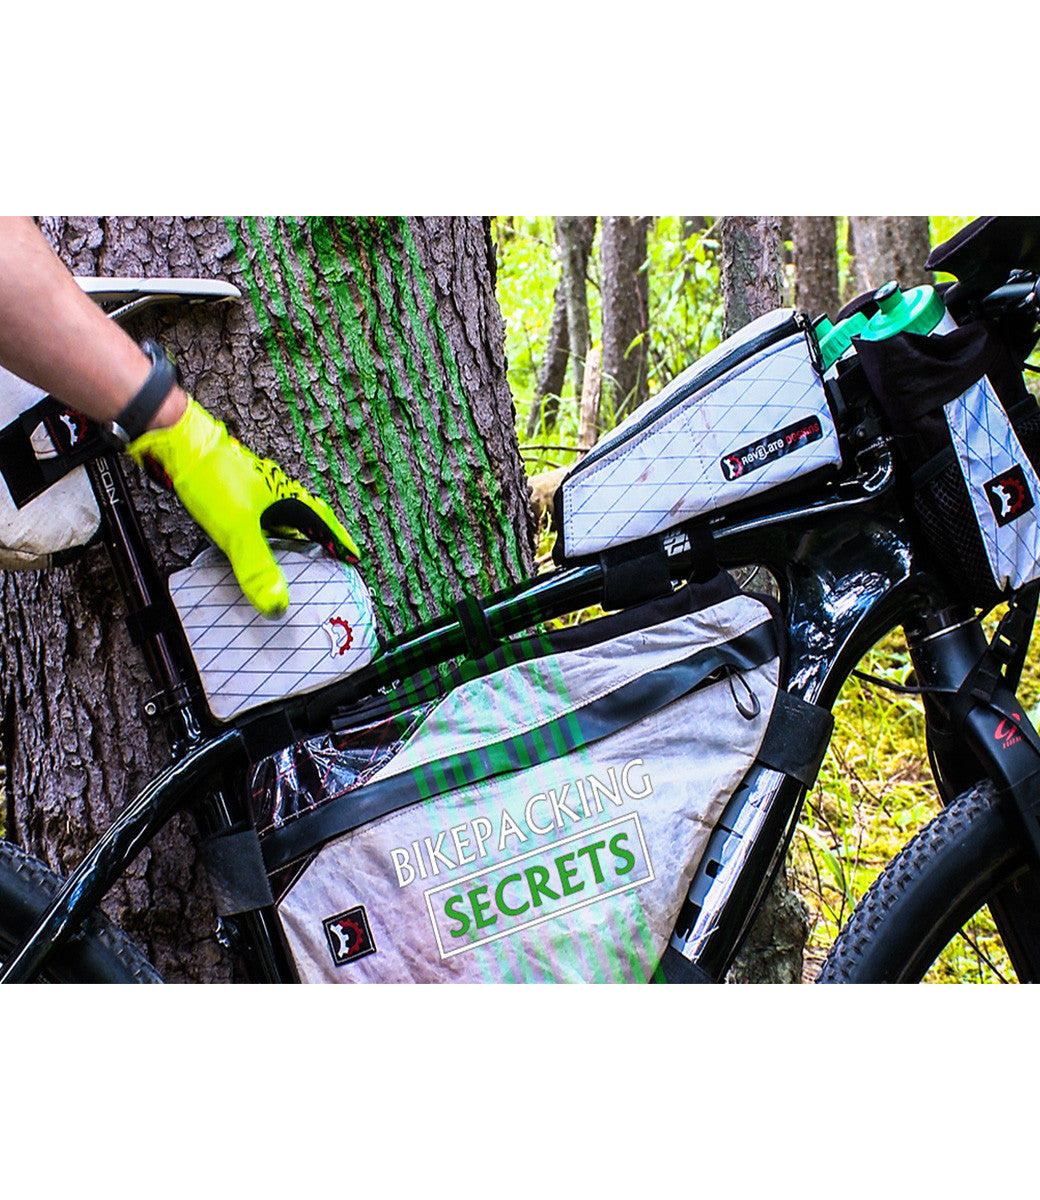 Bikepacking Secrets